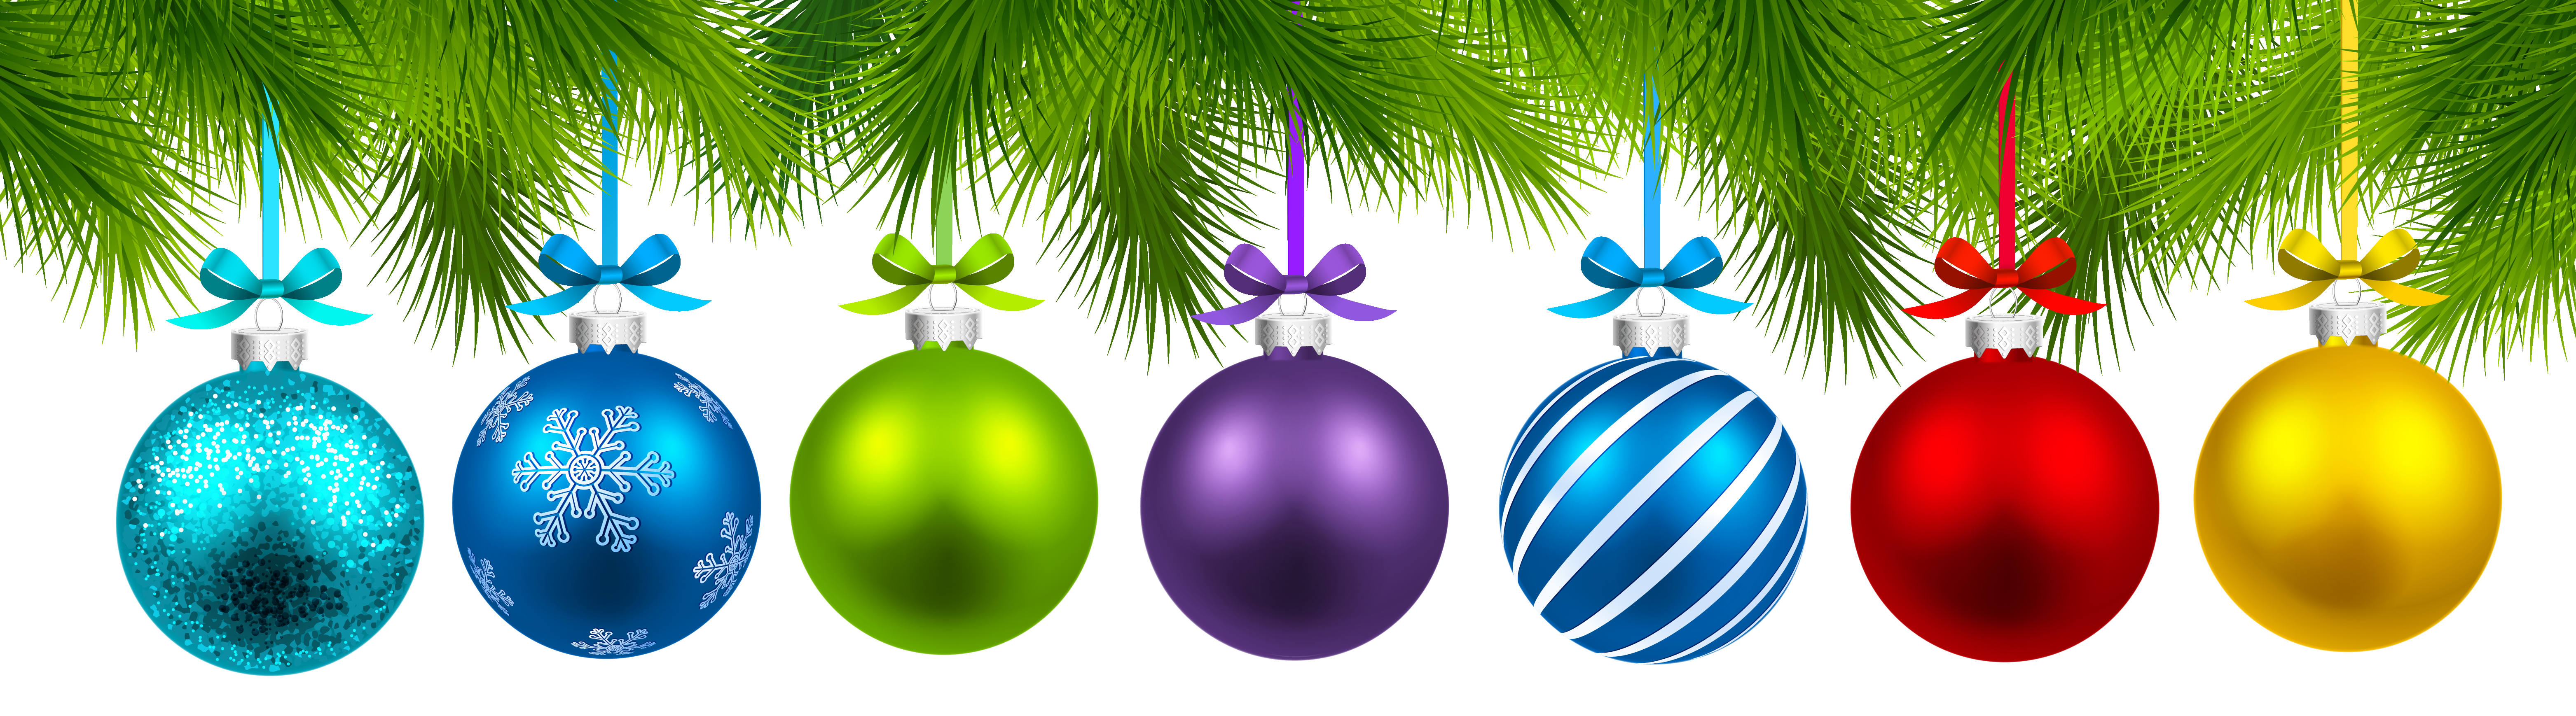 Decor Balls Ornament Tree Decoration Christmas PNG Image